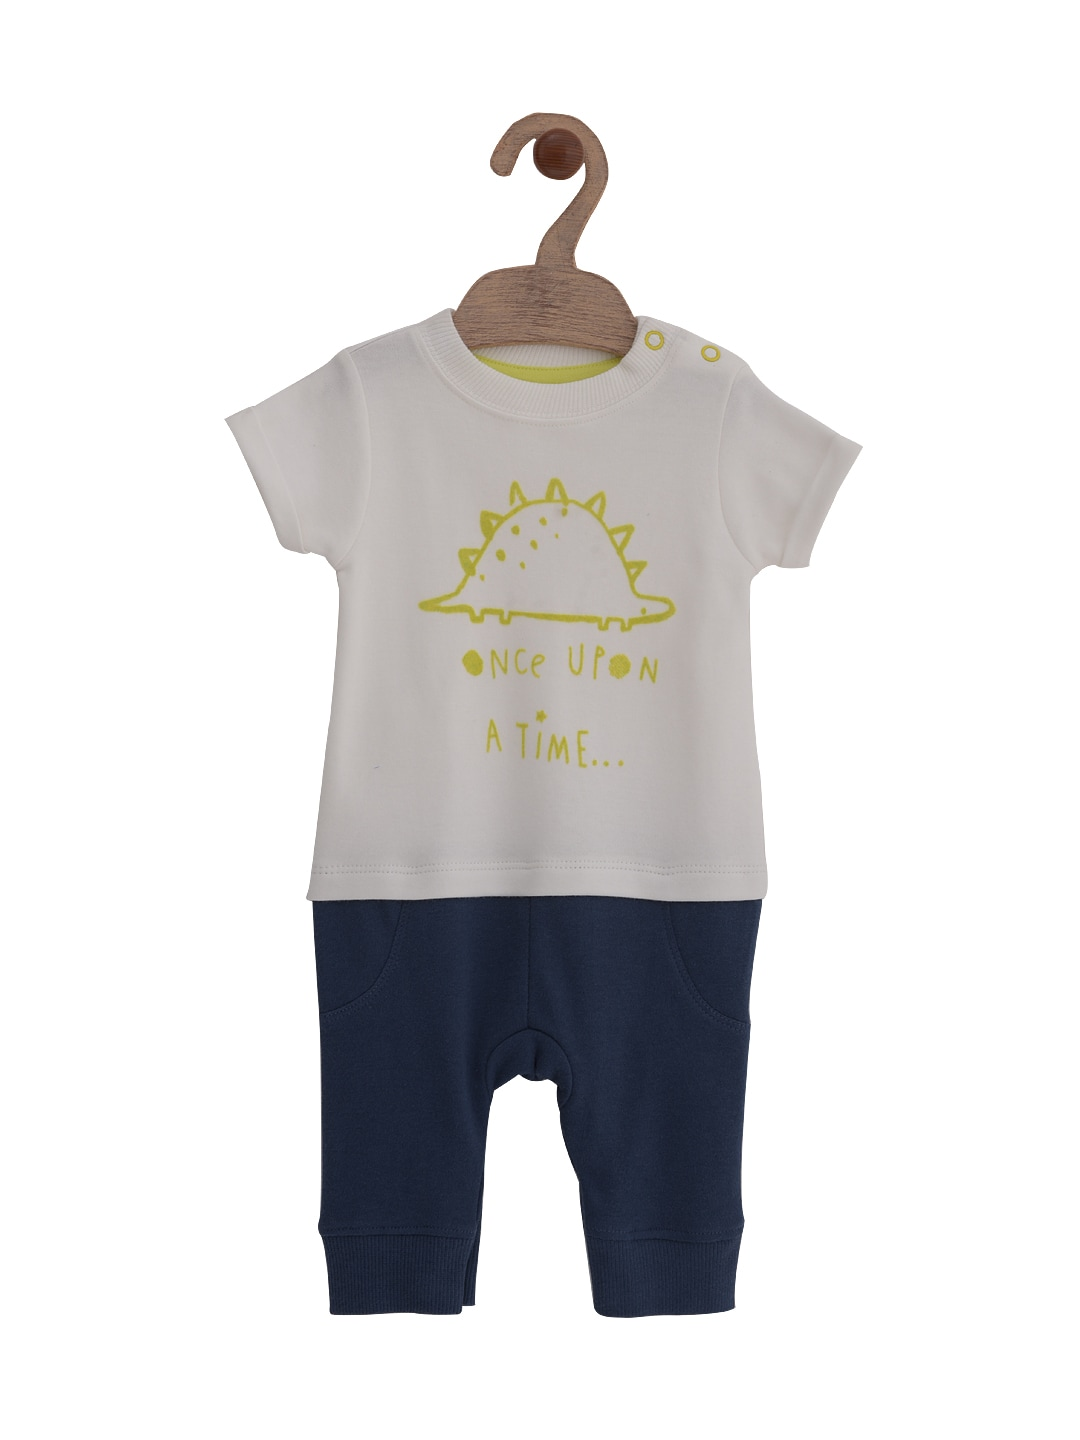 mothercare Infant Boys White & Navy Printed Rompers